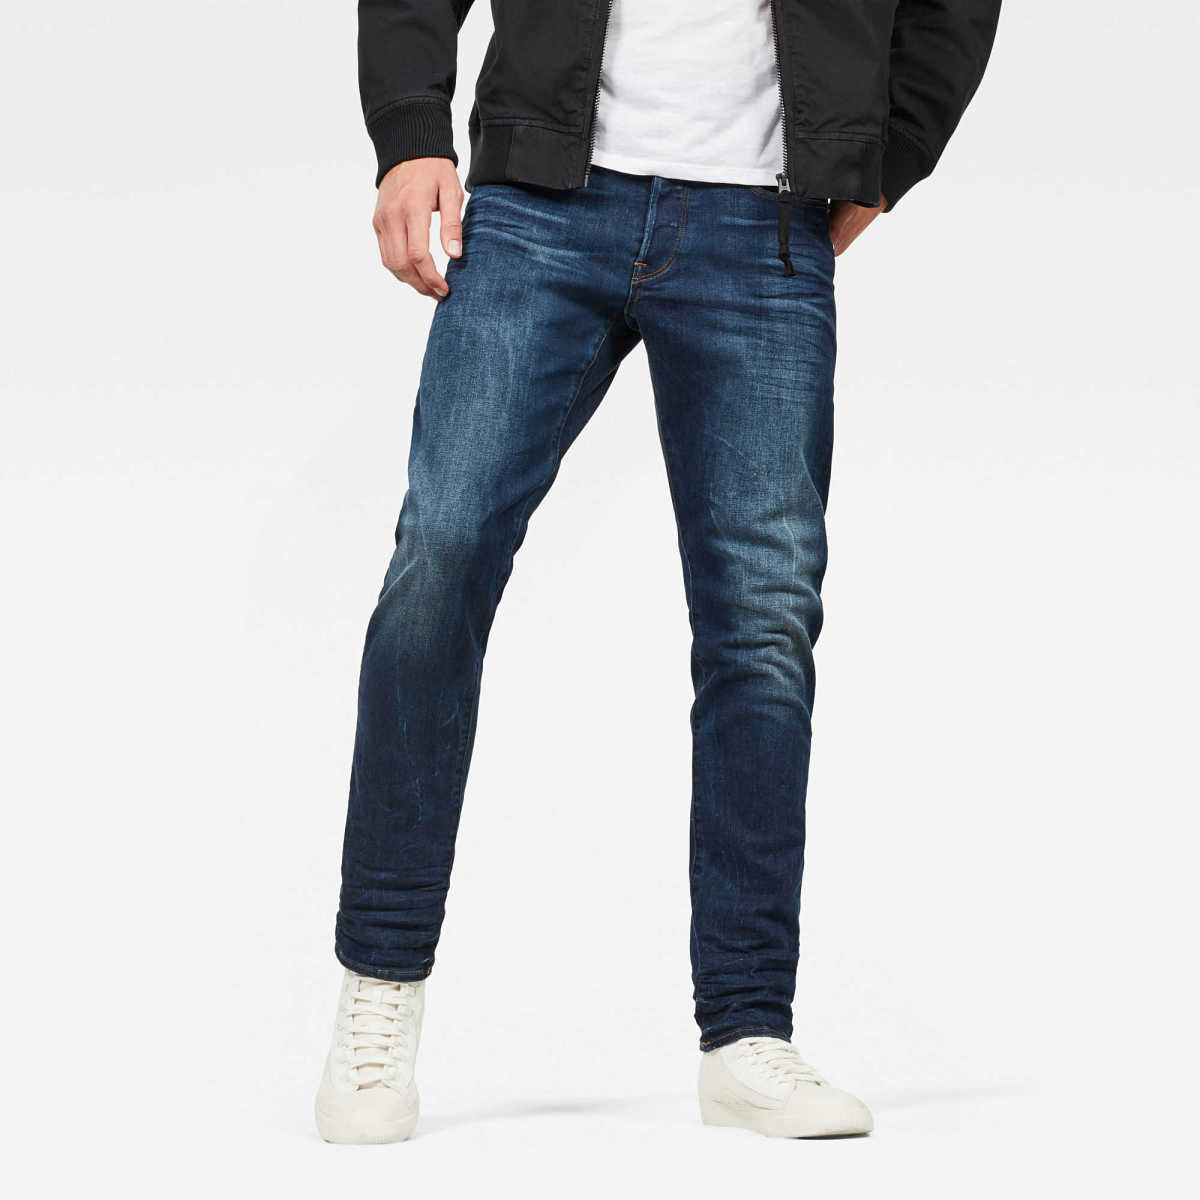 G-Star Male 3301 Straight Tapered Jeans Tapered Dark Blue USA - GOOFASH - Mens JEANS